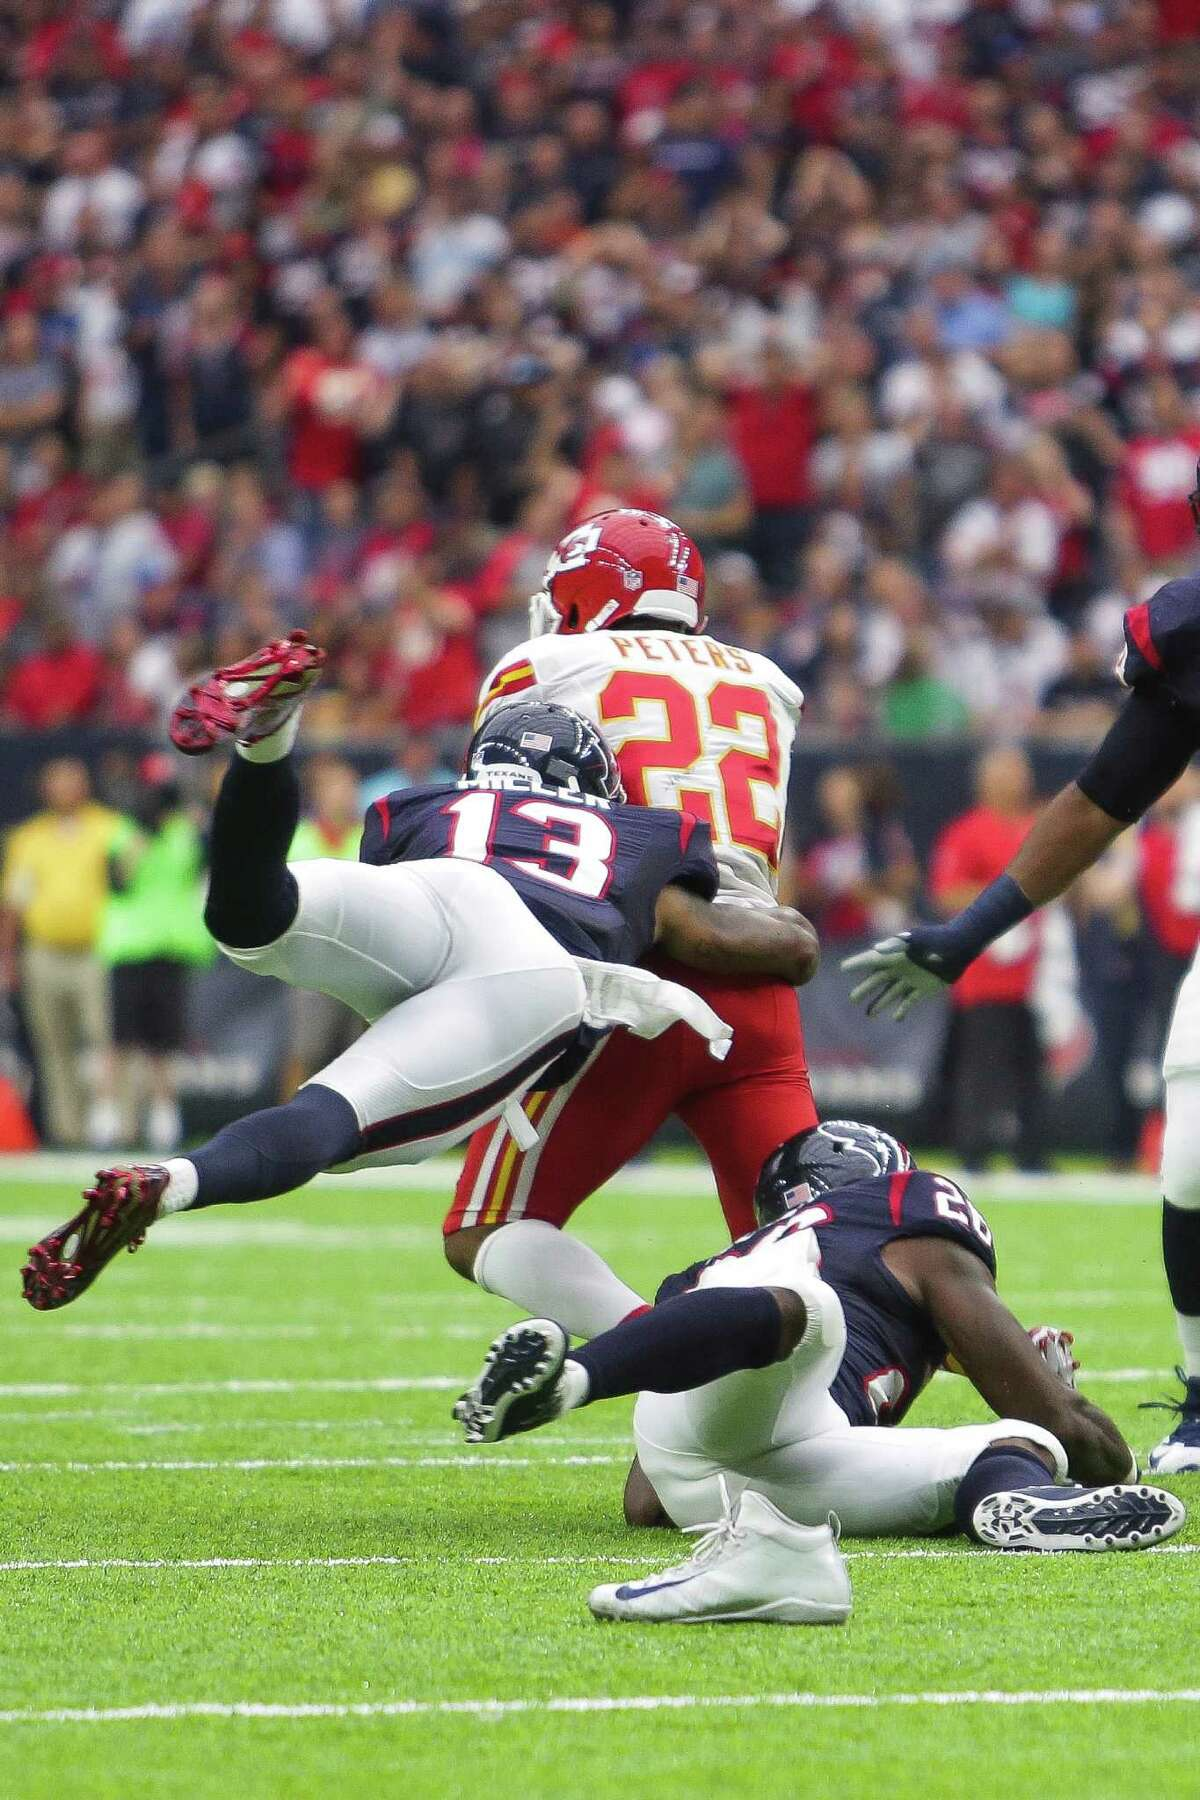 Houston Texans wide receiver Braxton Miller (13) tackles Kansas City Chiefs cornerback Marcus Peters (22) after Peters caught an interception during the first quarter of an NFL game at NRG Stadium Sunday, Sept. 18, 2016 in Houston.